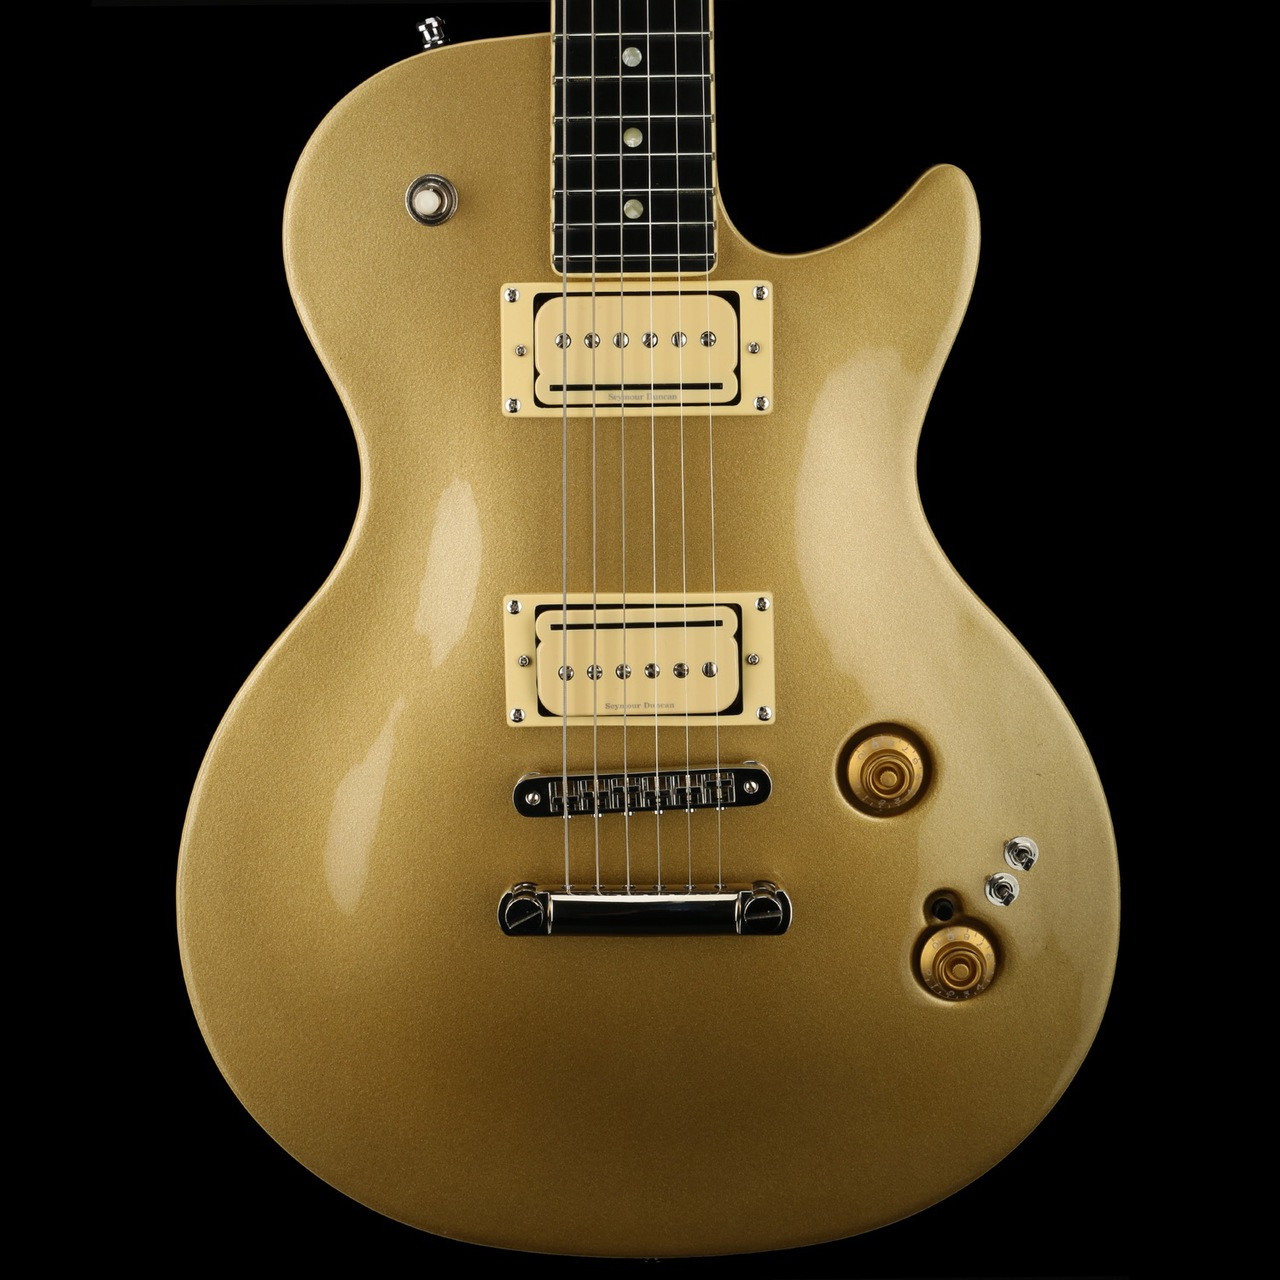 godin summit classic ct convertible seymour duncan p rails in gold hg with gigbag wildwire. Black Bedroom Furniture Sets. Home Design Ideas